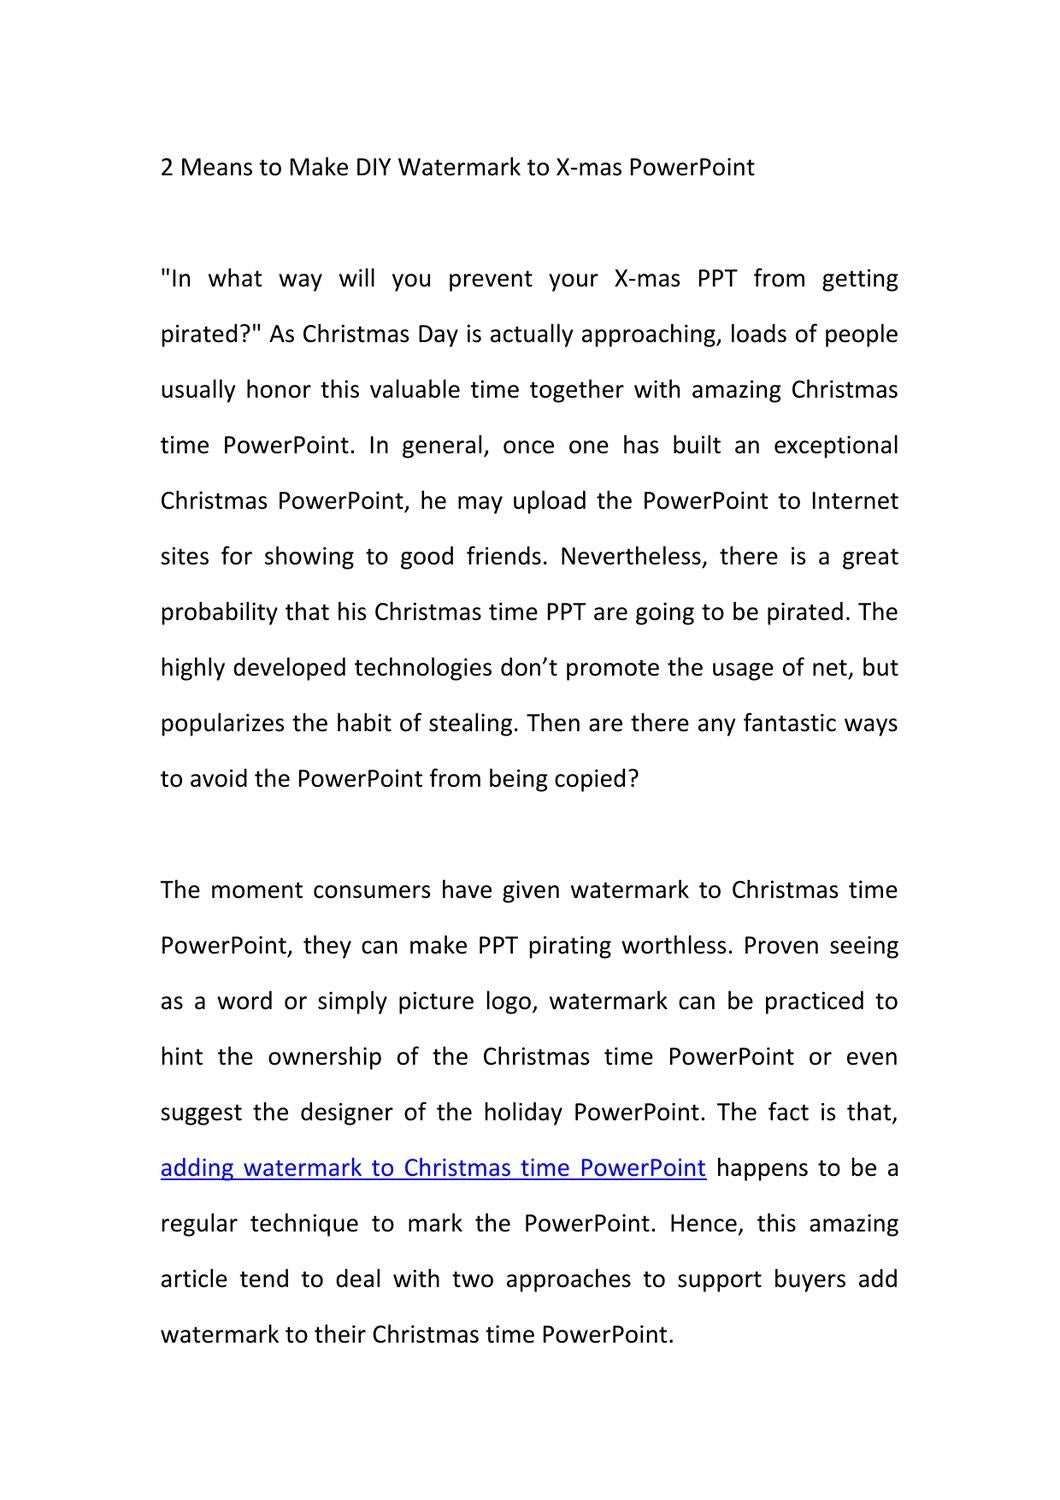 2 Means To Make Diy Watermark To X Mas Powerpoint By Gary Pang Issuu